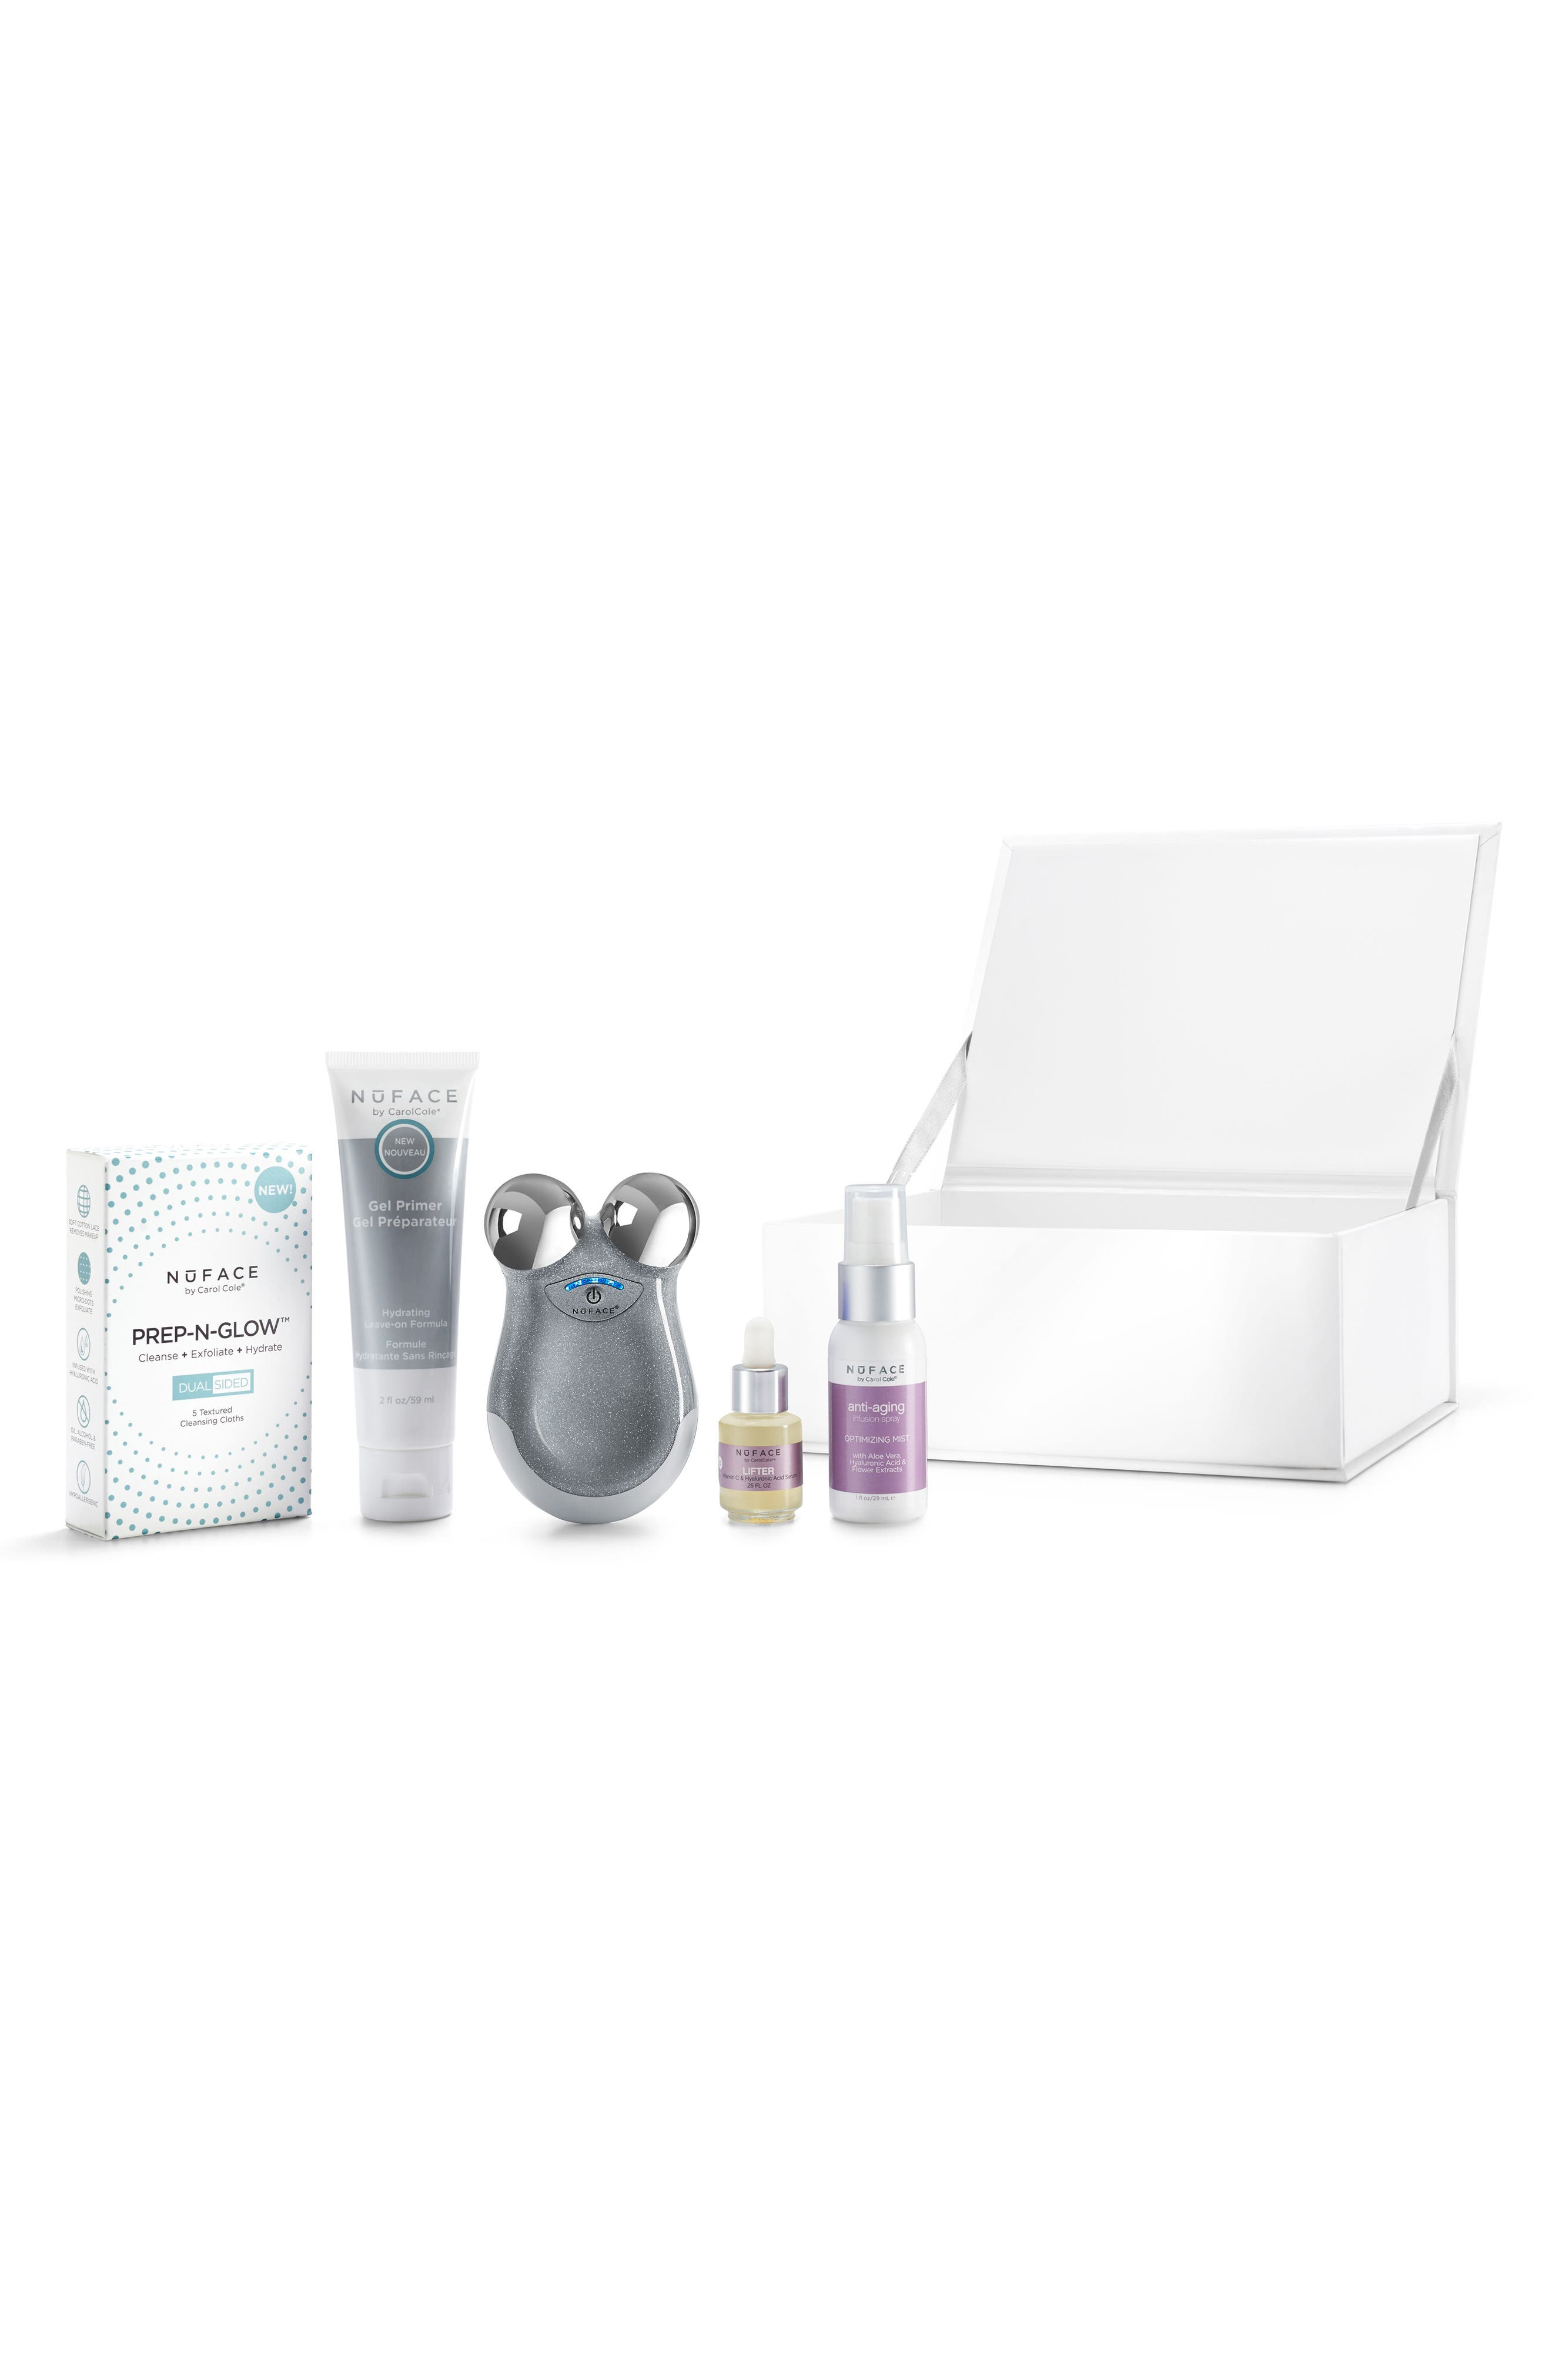 NuFACE® On the Glow Microcurrent + Hydration Travel Essentials Set ($254 Value)